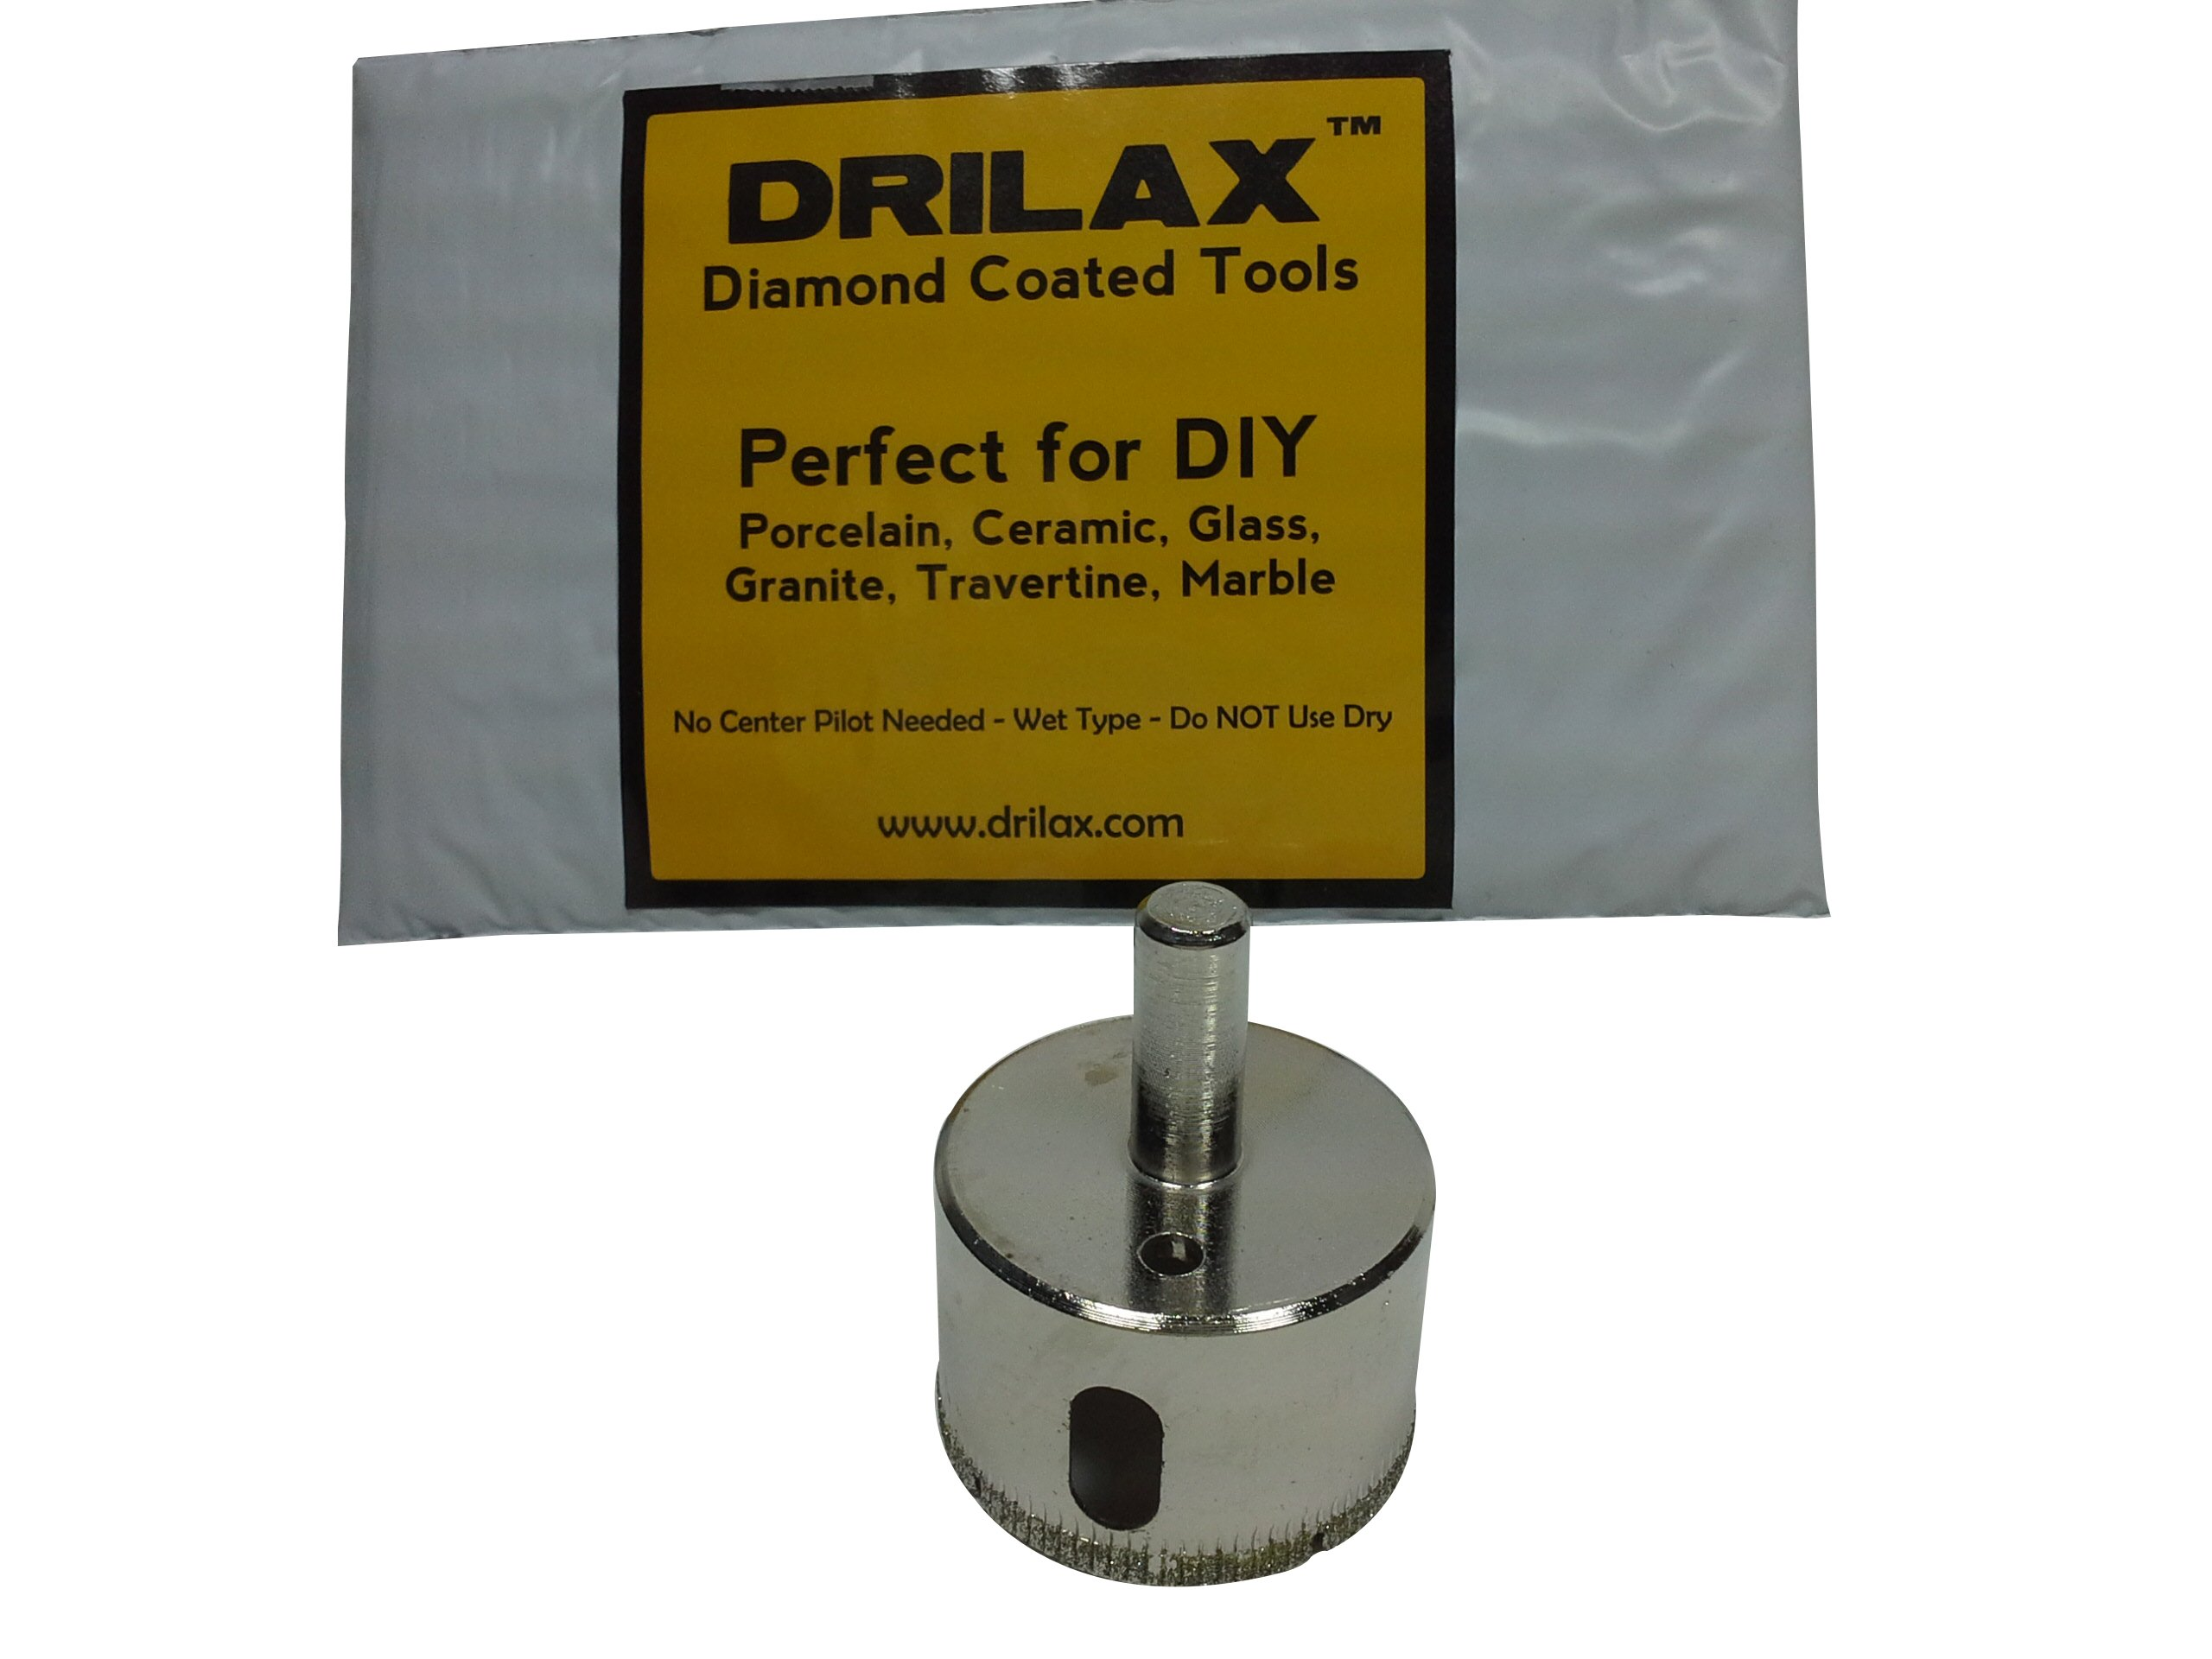 """Drilax 1 3/4 Inch Diamond Hole Saw Drill Bit Tiles, Glass, Fish Tanks, Marble, Granite Countertop, Ceramic, Porcelain, Coated Core Bits Holesaw DIY Kitchen, Bathroom, Shower, Faucet Installation Size 1 3/4"""" Inches"""